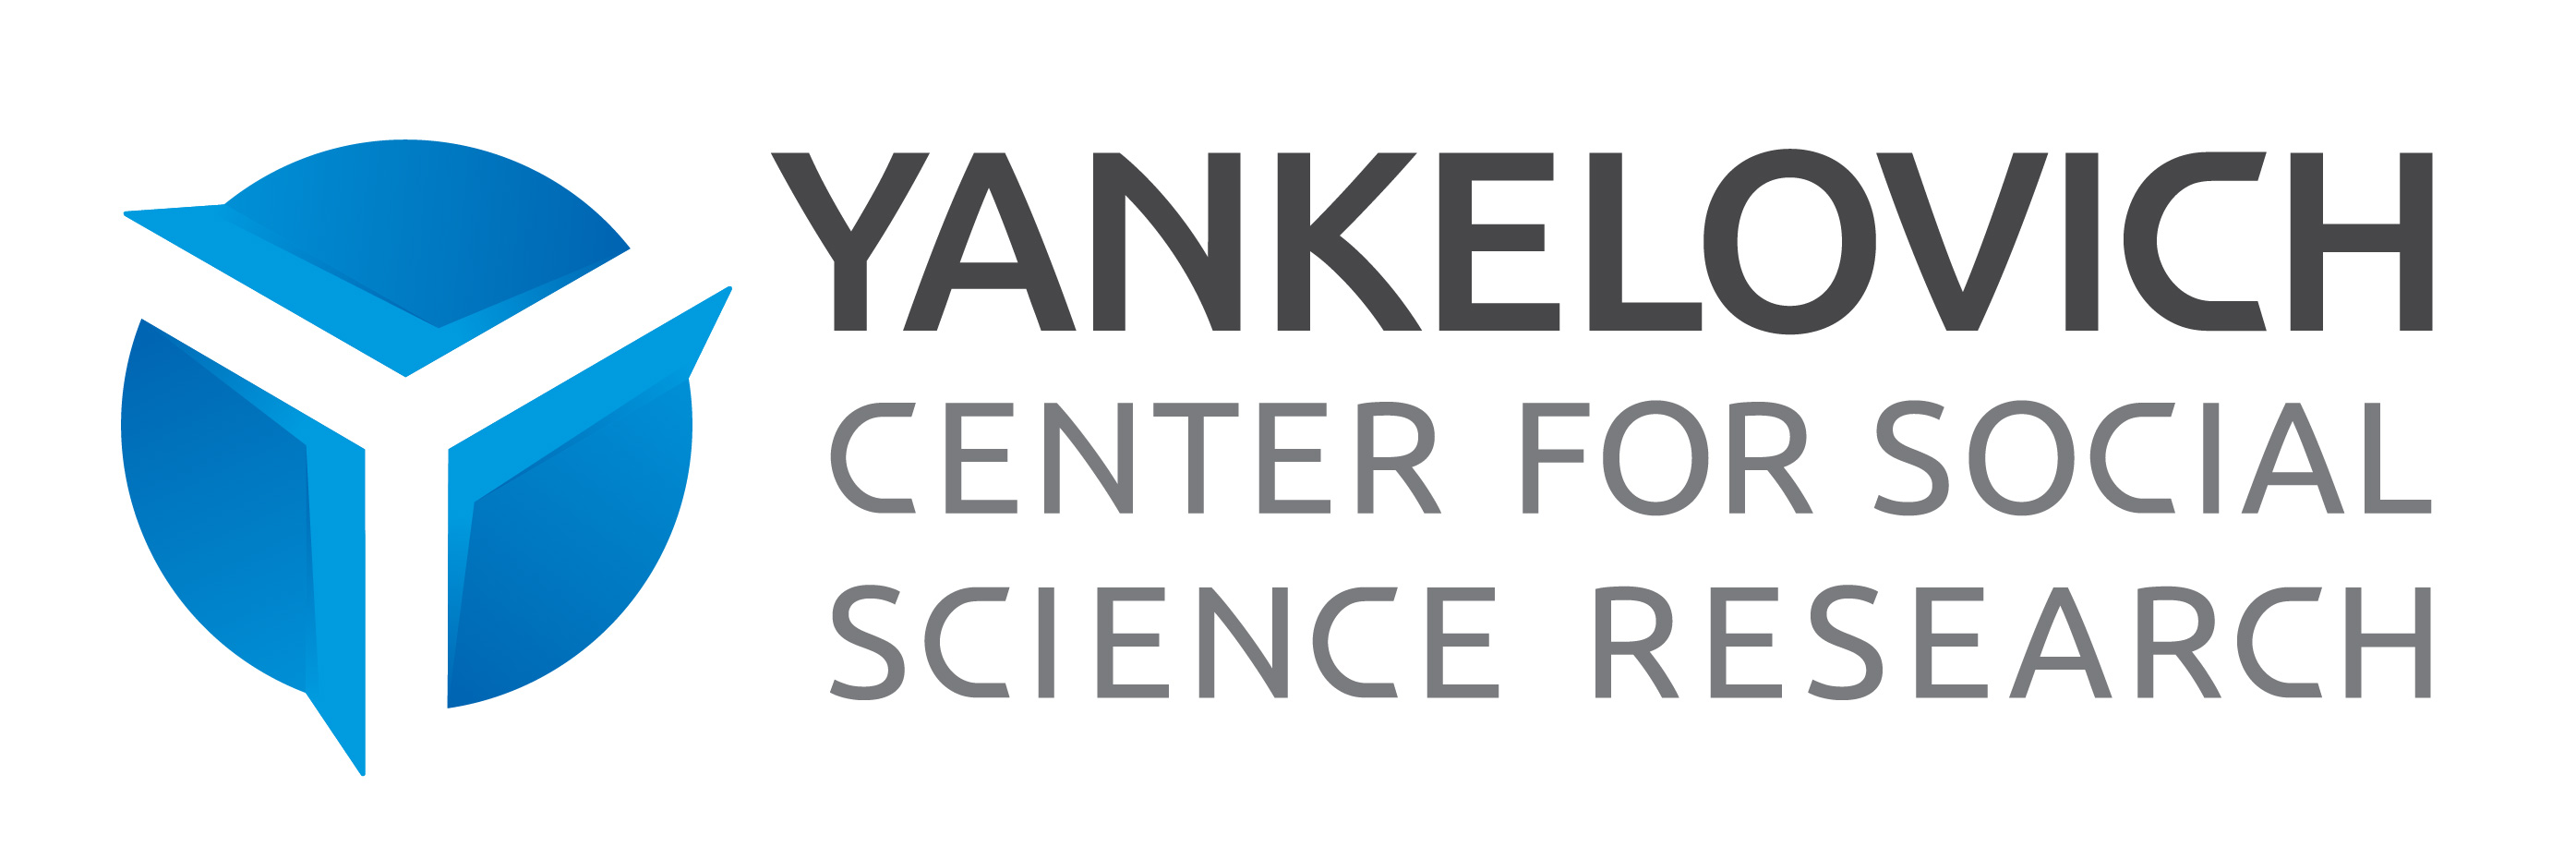 the yankelovich center for social science research